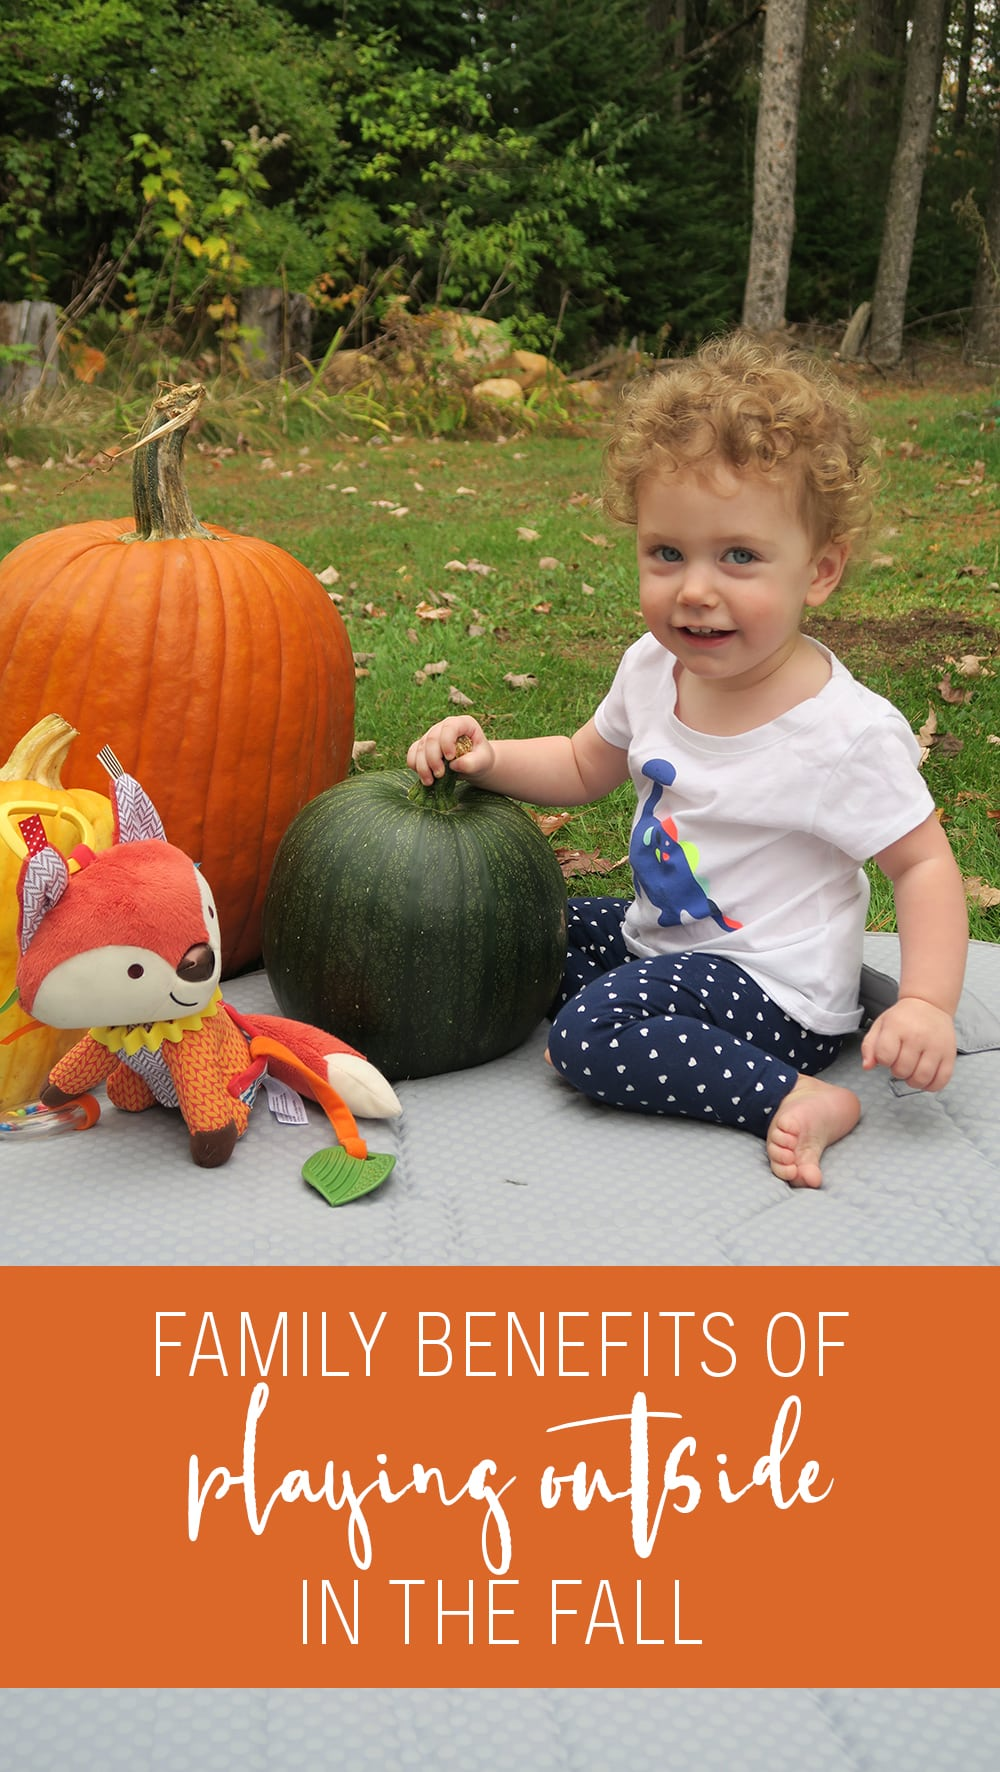 Did you know there are tons of benefits of playing outside in fall for families? Check out what they are plus some easy ideas for a fun, filled autumn!